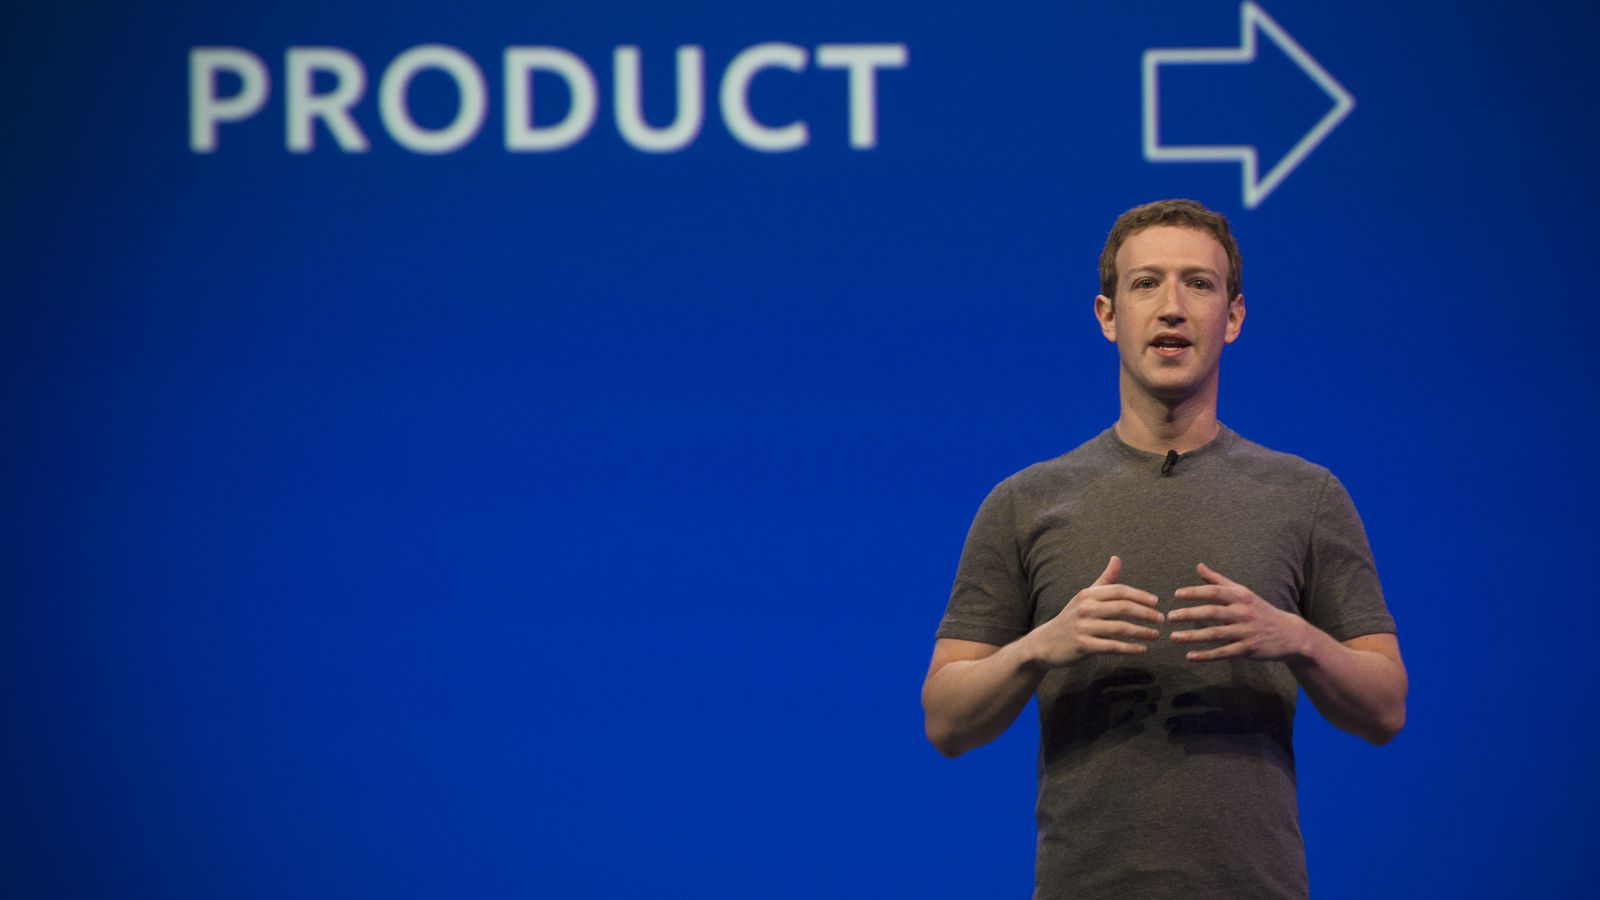 Mark Zuckerberg talking about Facebook Messenger marketing products on Facebook's recent F8 conference.